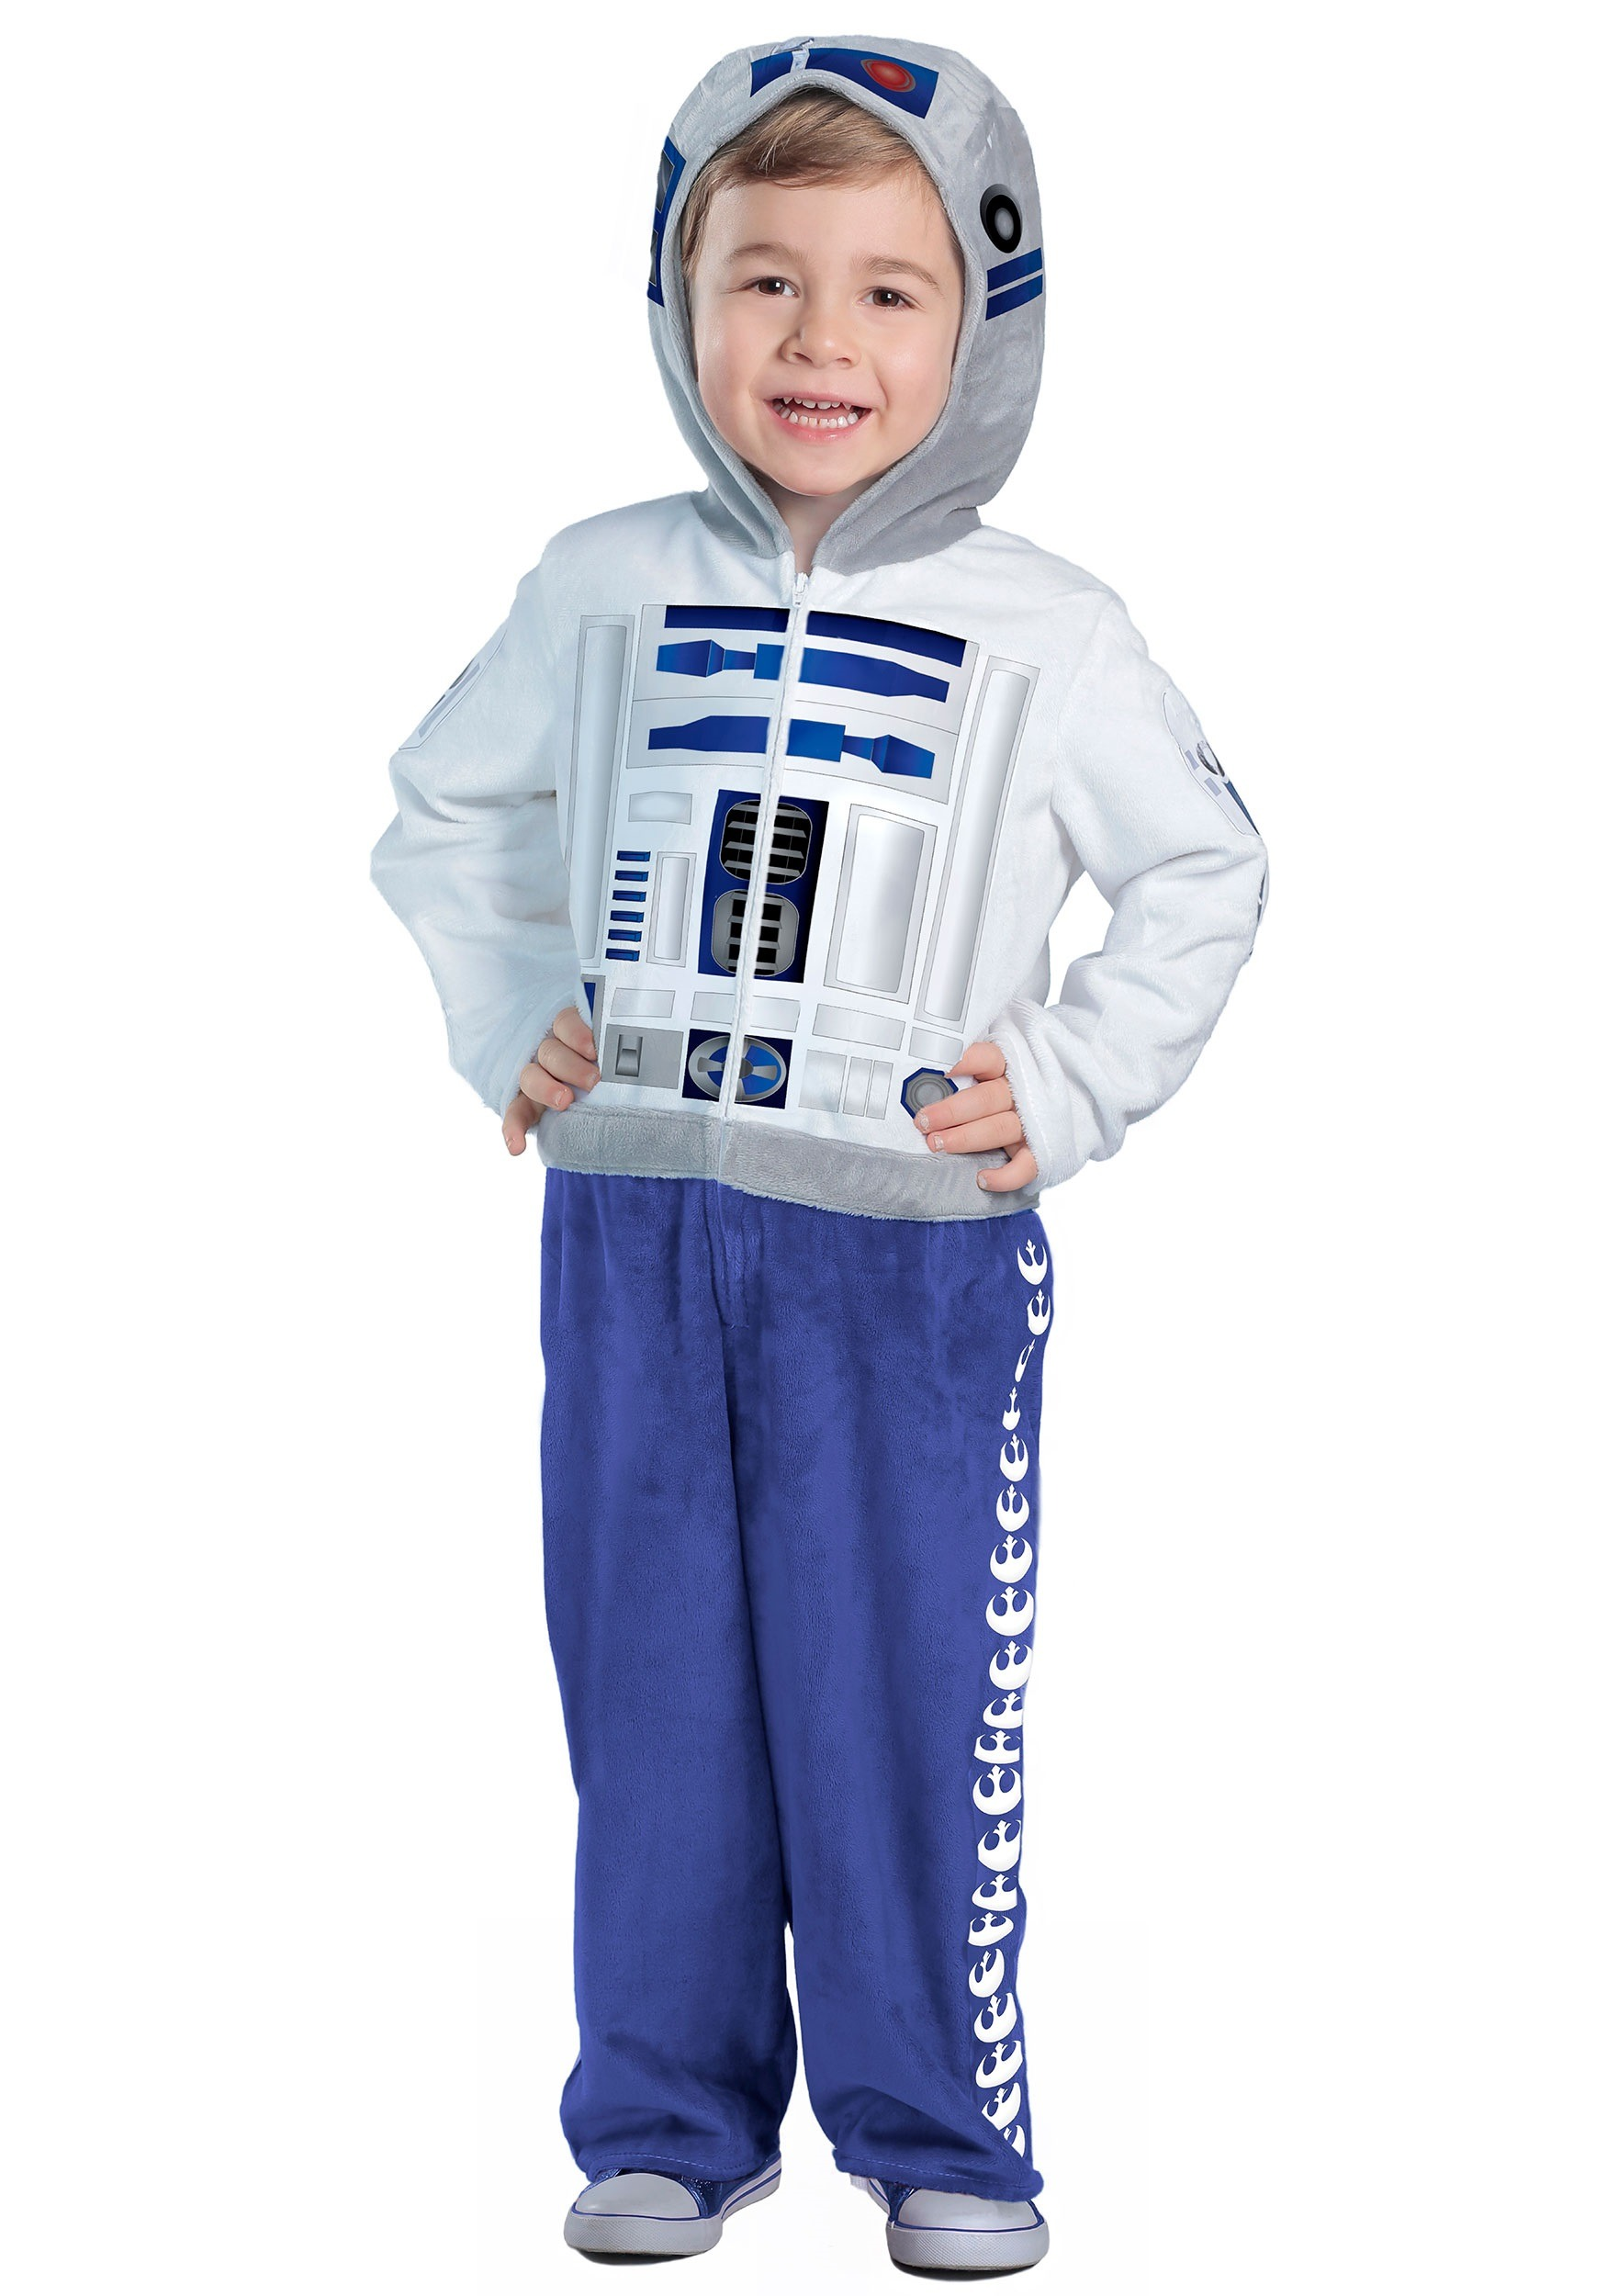 R2d2 Baby Costume Toddler Deluxe R2D2 Co...